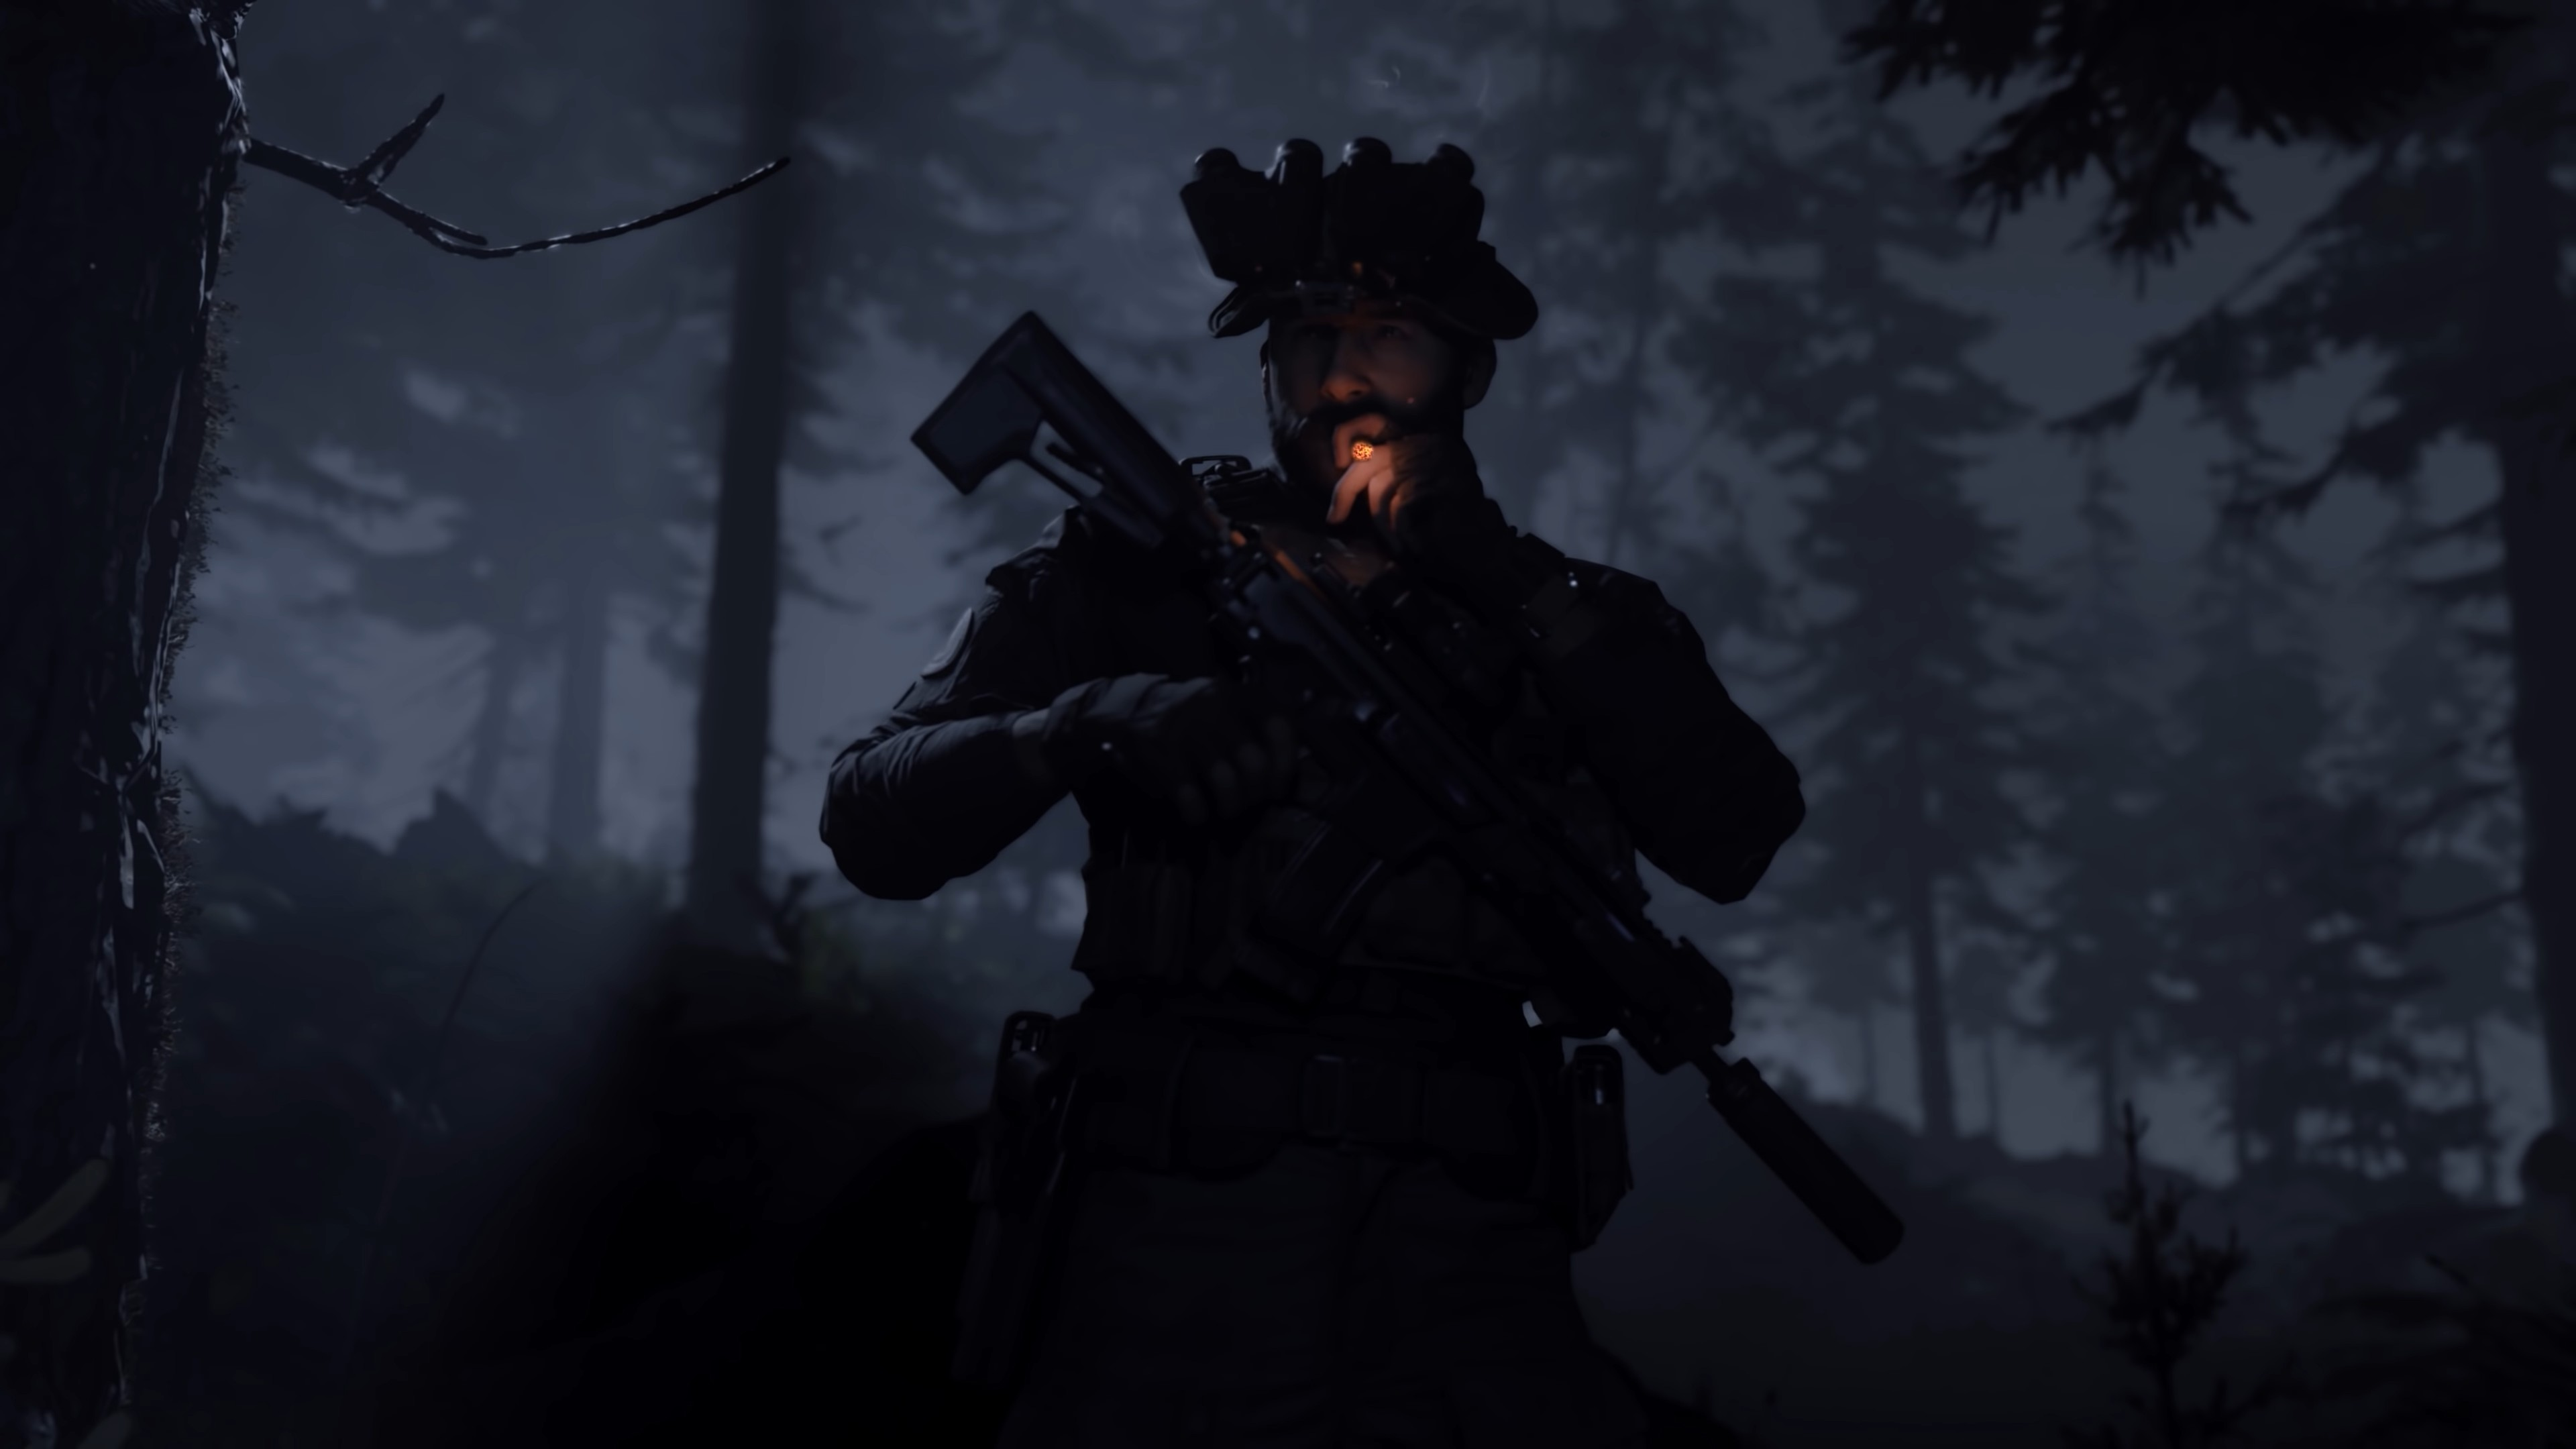 Call Of Duty Modern Warfare Captain Price Smoking 4k Wallpaper 5